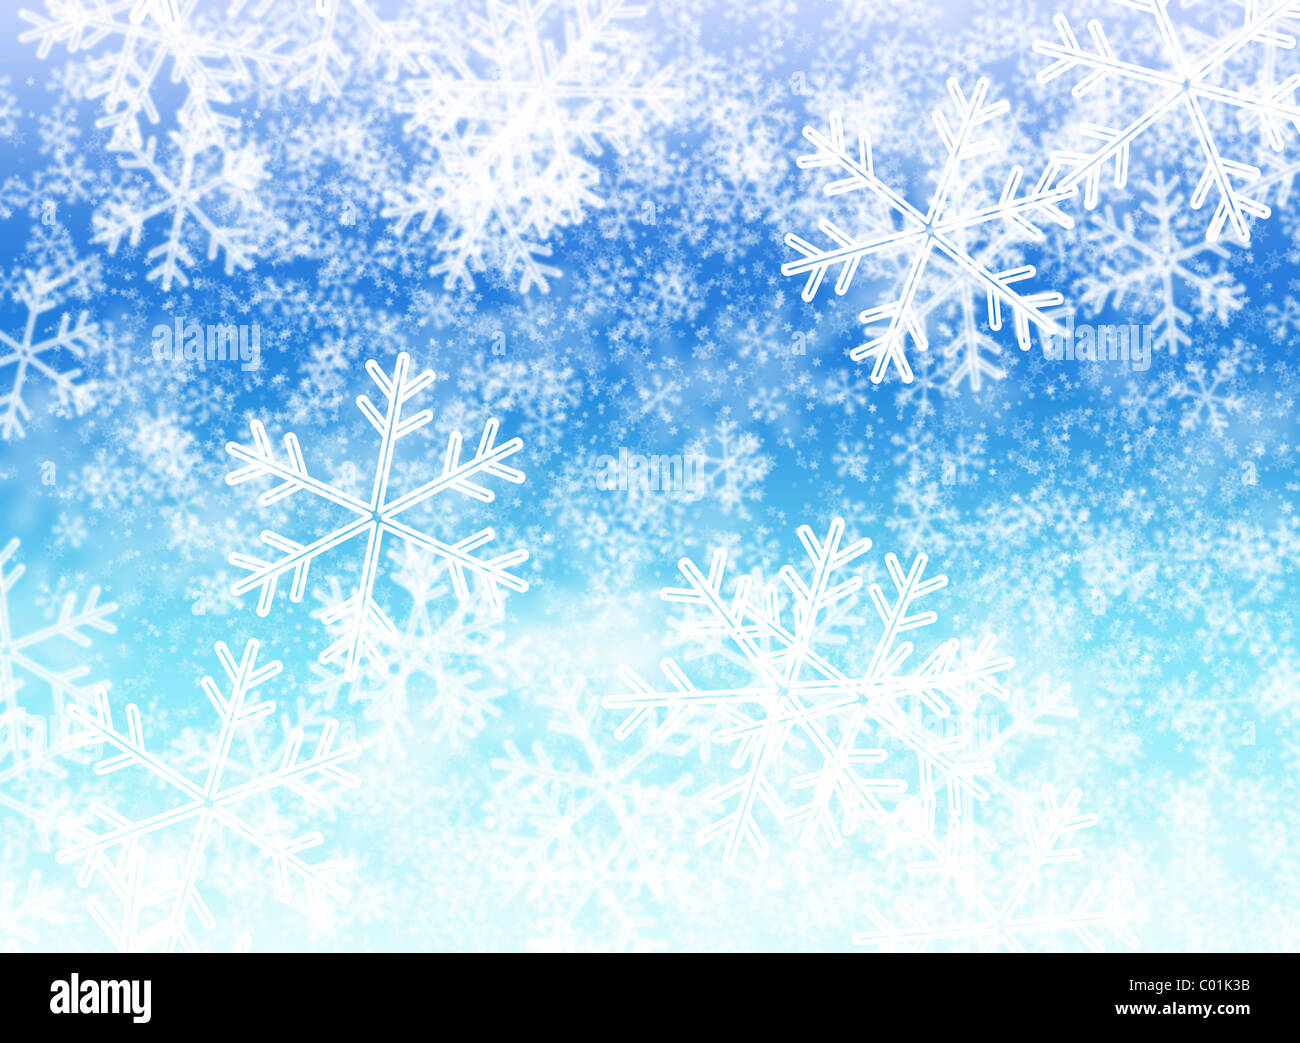 White snowflakes, blurred background - Stock Image